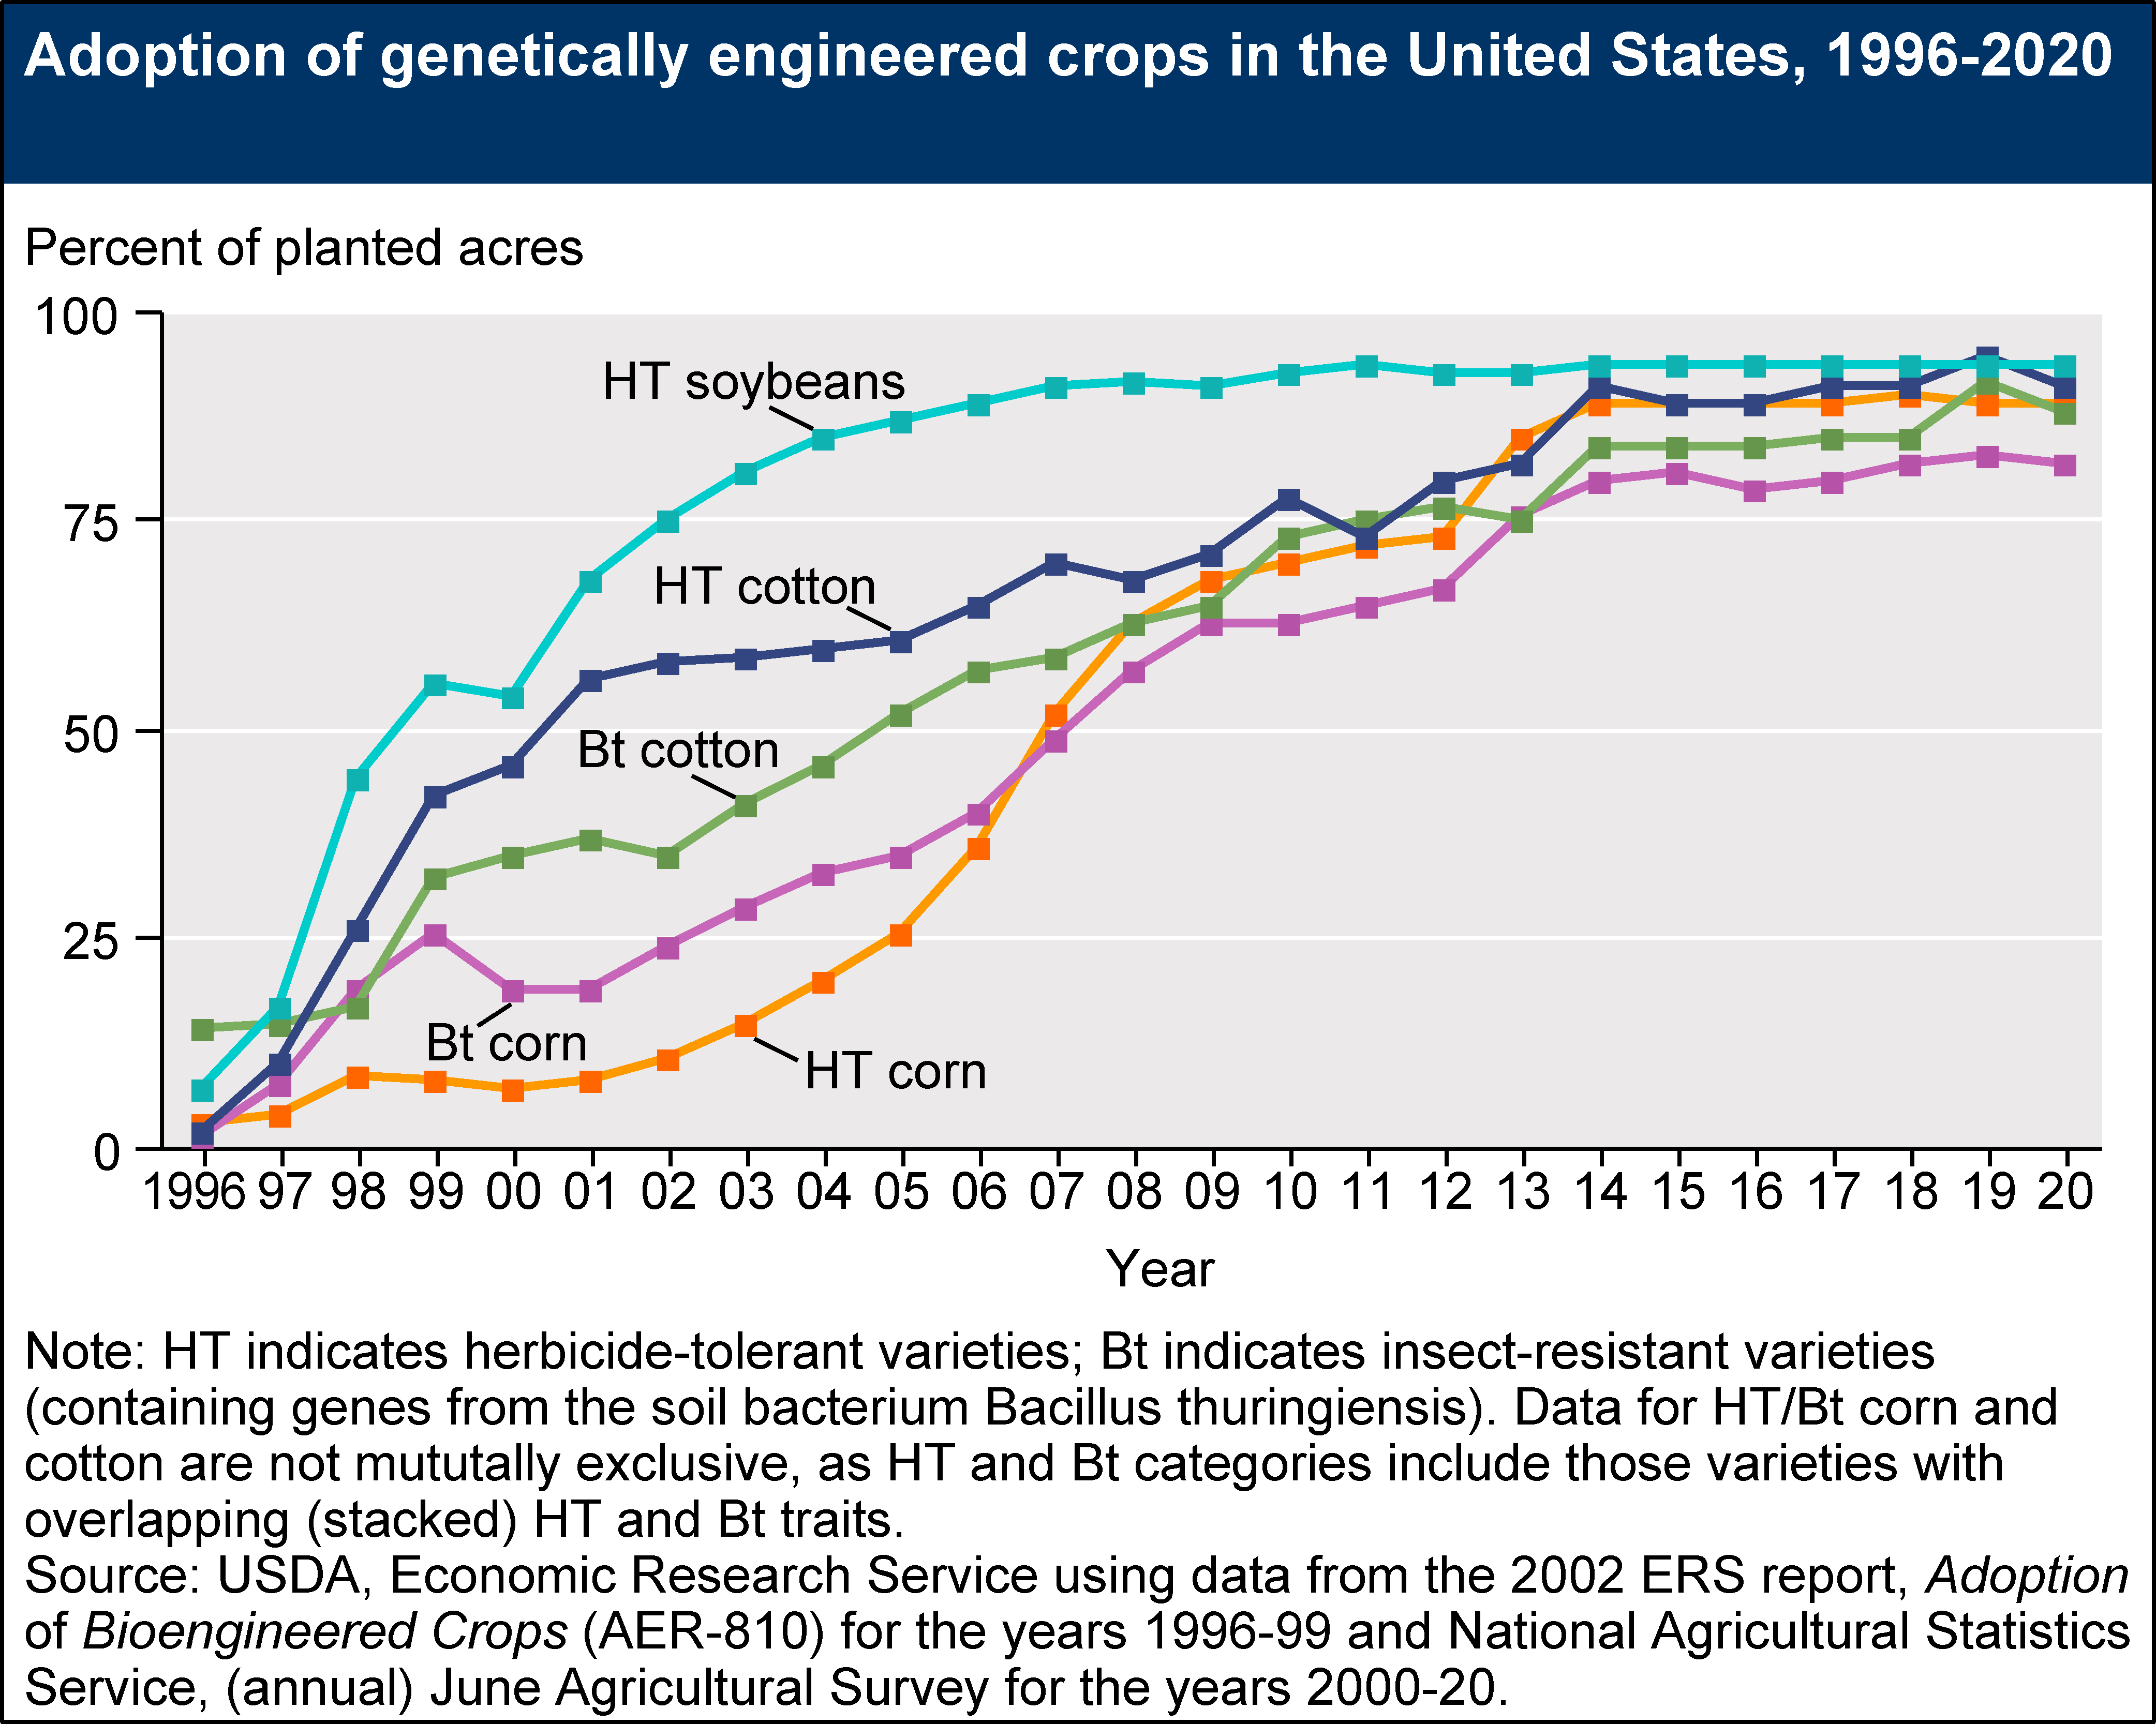 an analysis of the genetically engineered food in the agricultural production Food and food ingredients from genetically engineered plants were introduced into our food supply in the 1990s project team the following individuals contributed their valuable time and expertise to this project.